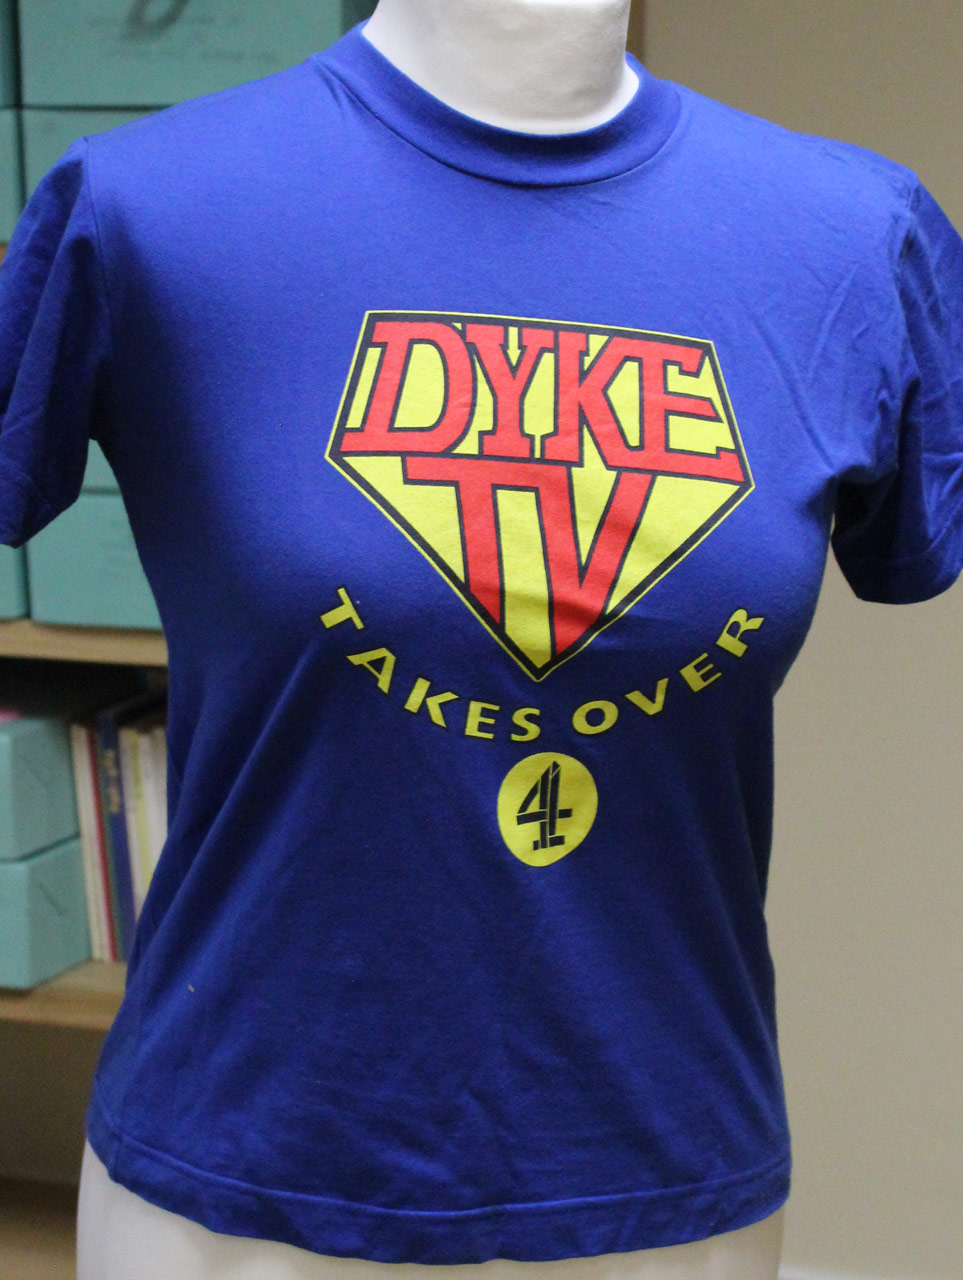 Dyke TV Takes Over Channel 4 T-shirt, designer unknown, c. 1995